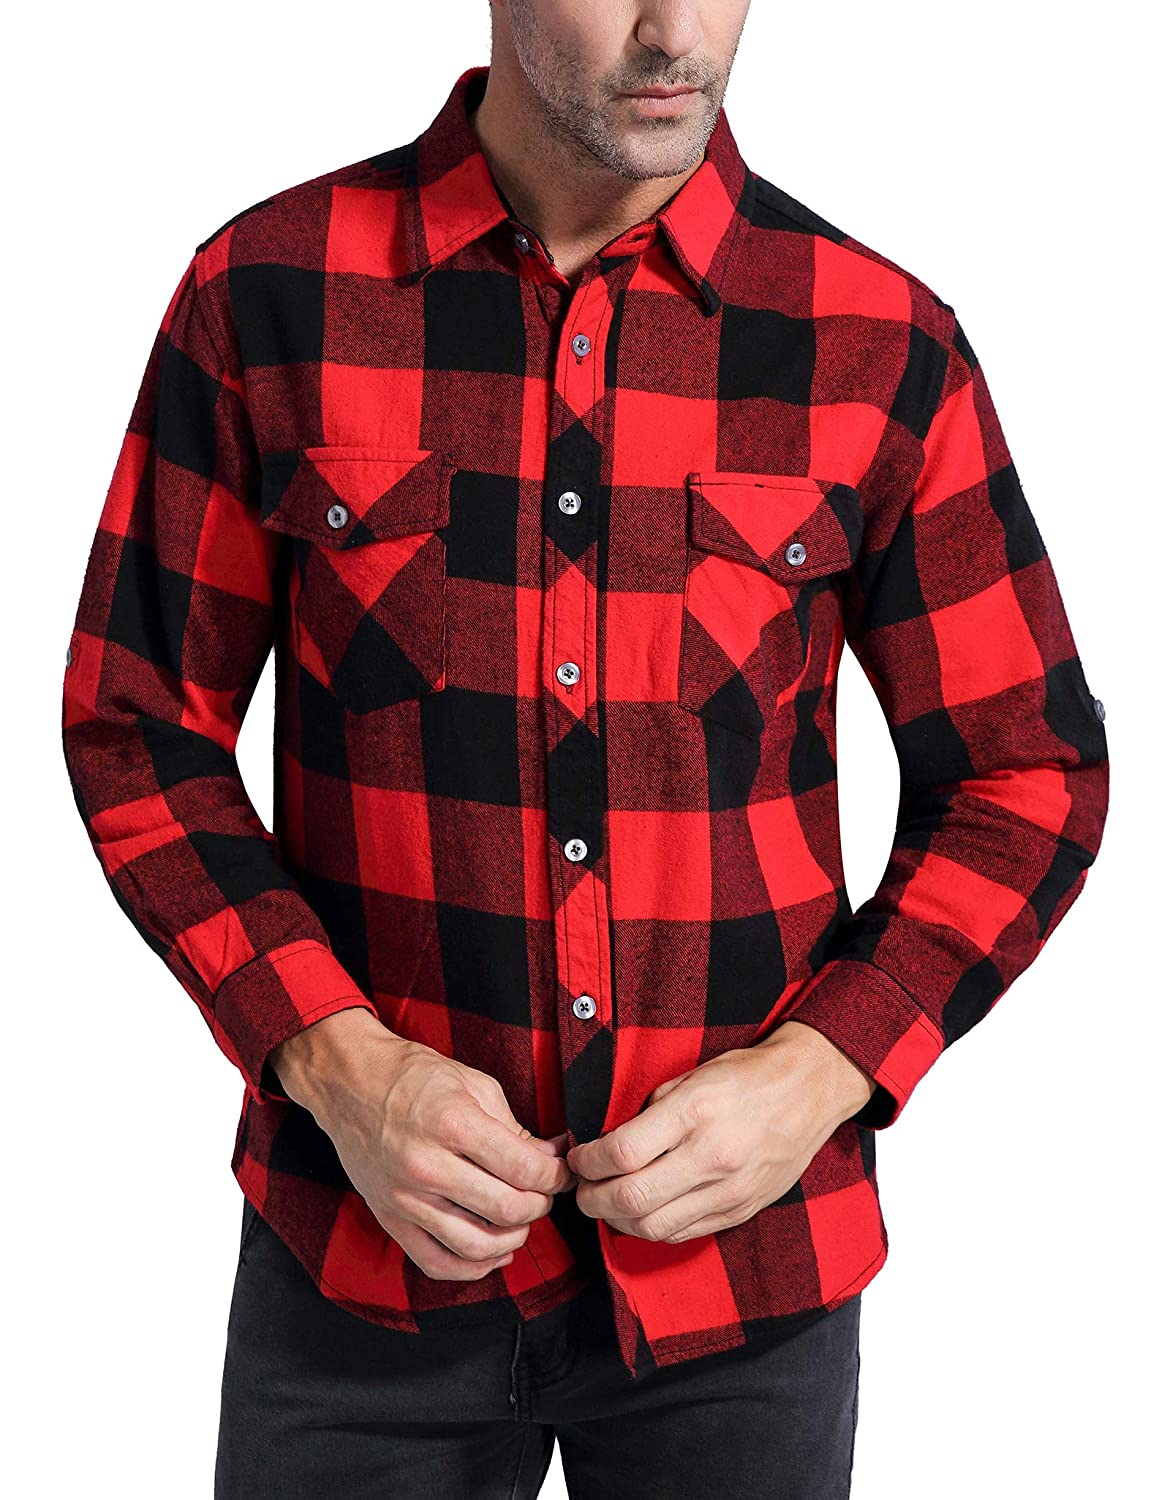 1940s Style Mens Shirts, Sweaters, Vests Coevals Club Mens Long Sleeve 100% Cotton Fleece Plaid Flannel Shirt $28.99 AT vintagedancer.com